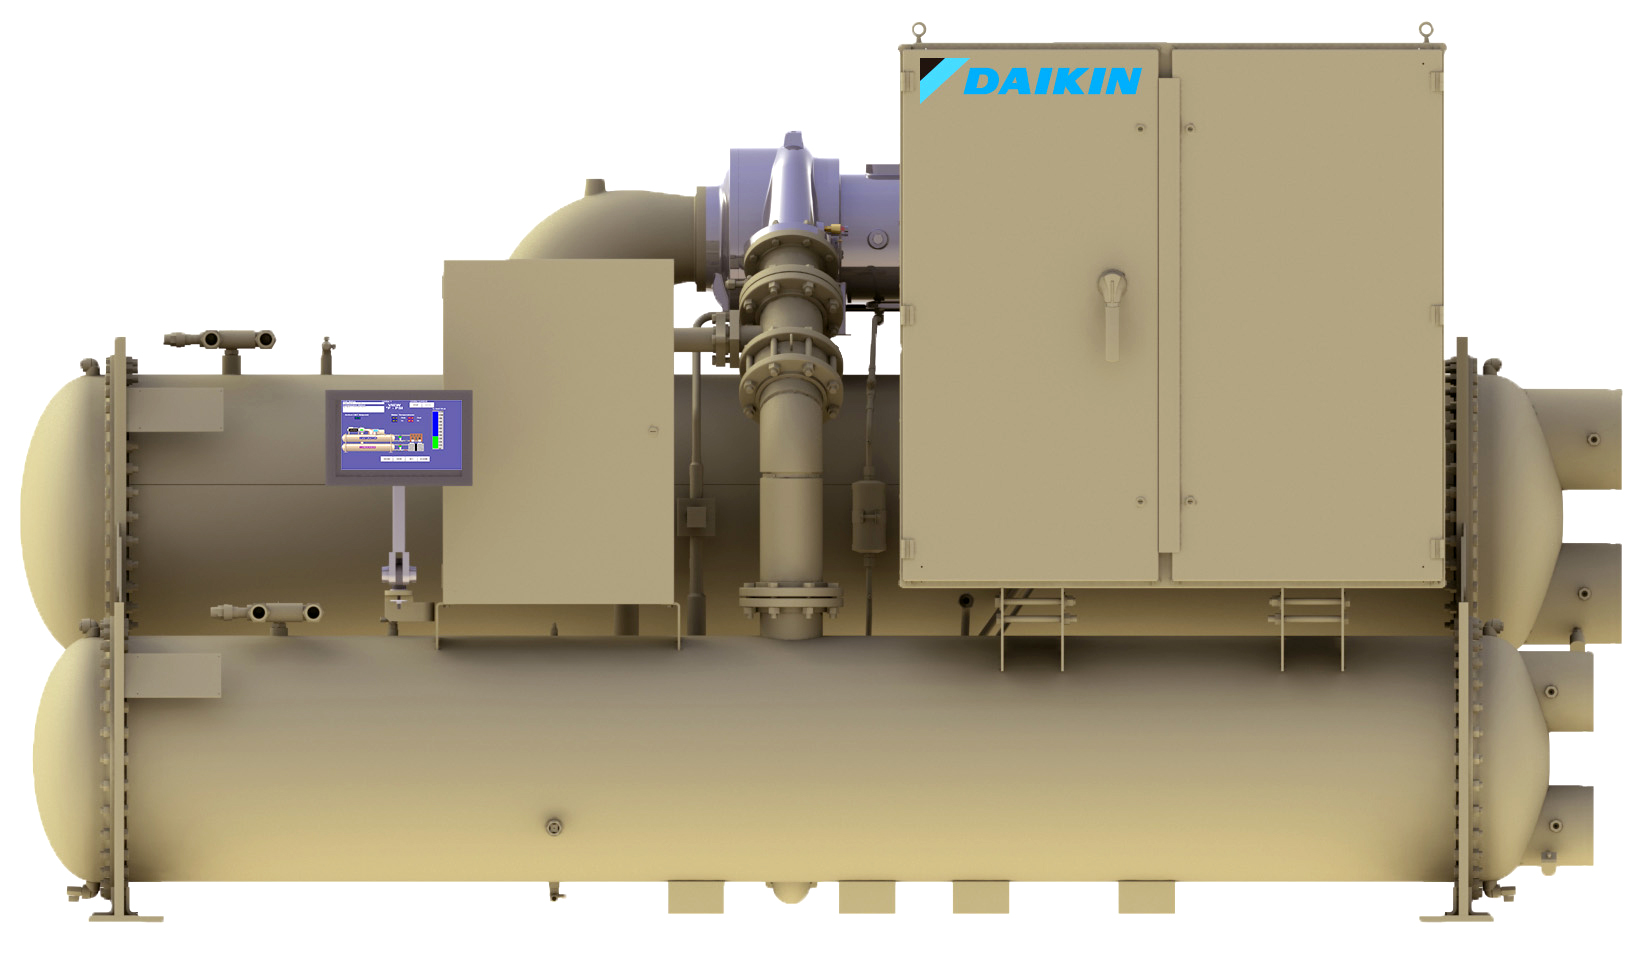 Daikin Applied Magnitude chiller